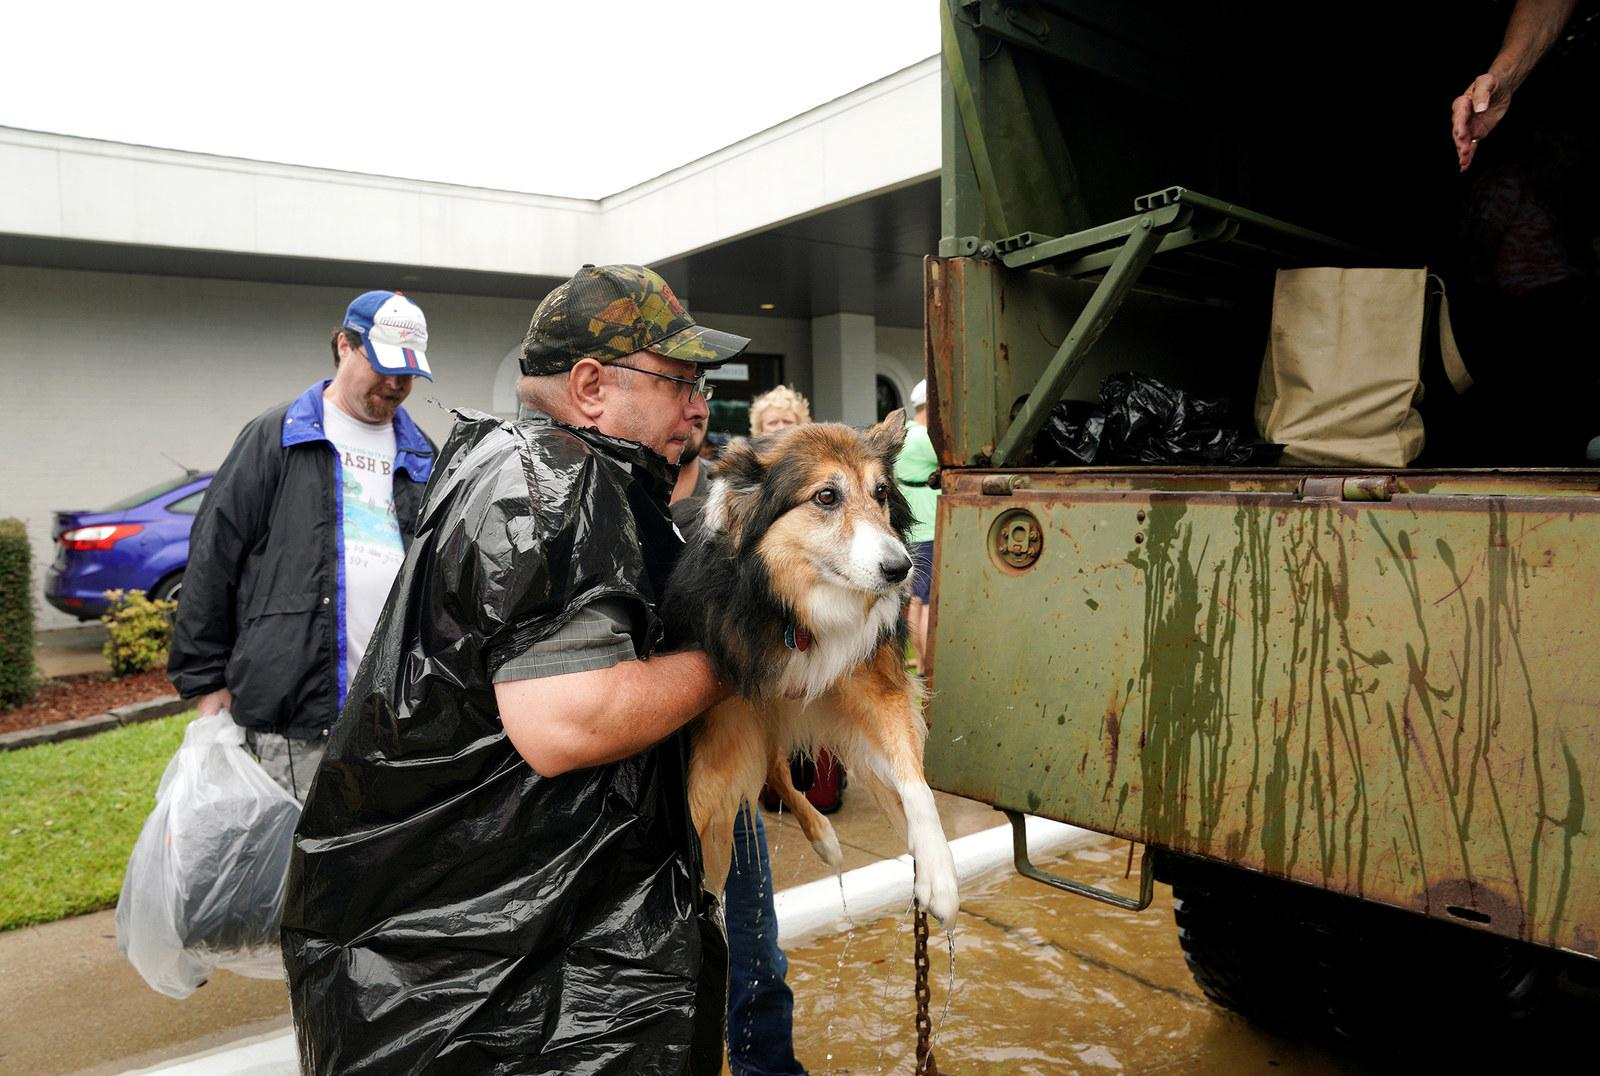 Volunteers load pets into a collector's vintage military truck to evacuate them from flood waters in Dickinson, Texas, on Aug. 27.